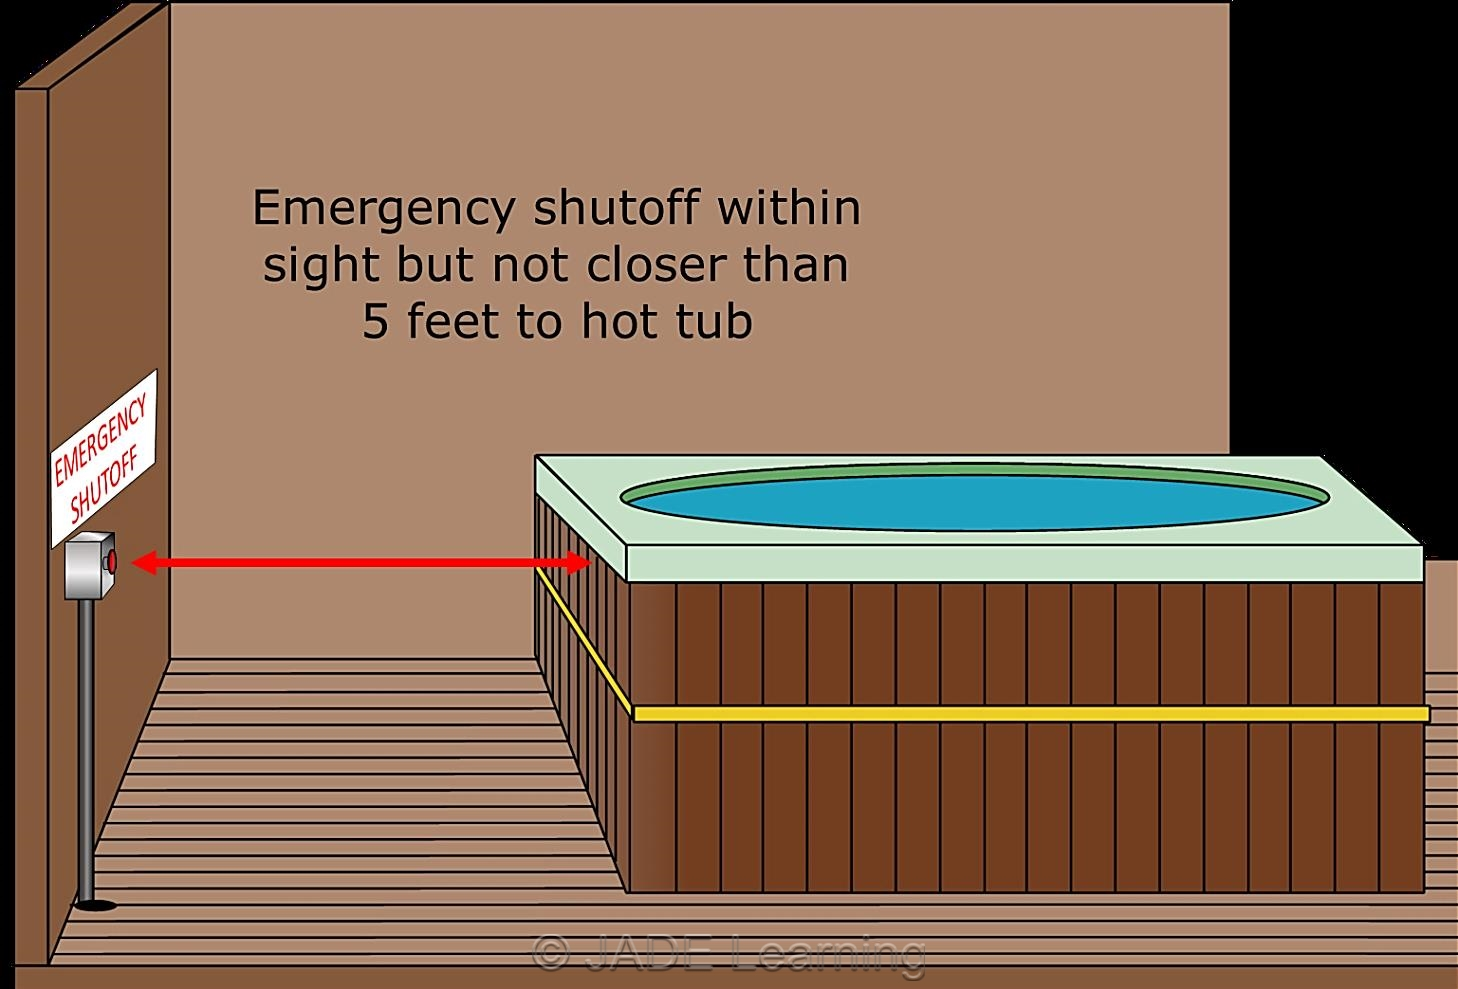 hight resolution of emergency shutoff within sight but not closer than 5 feet to hot tub